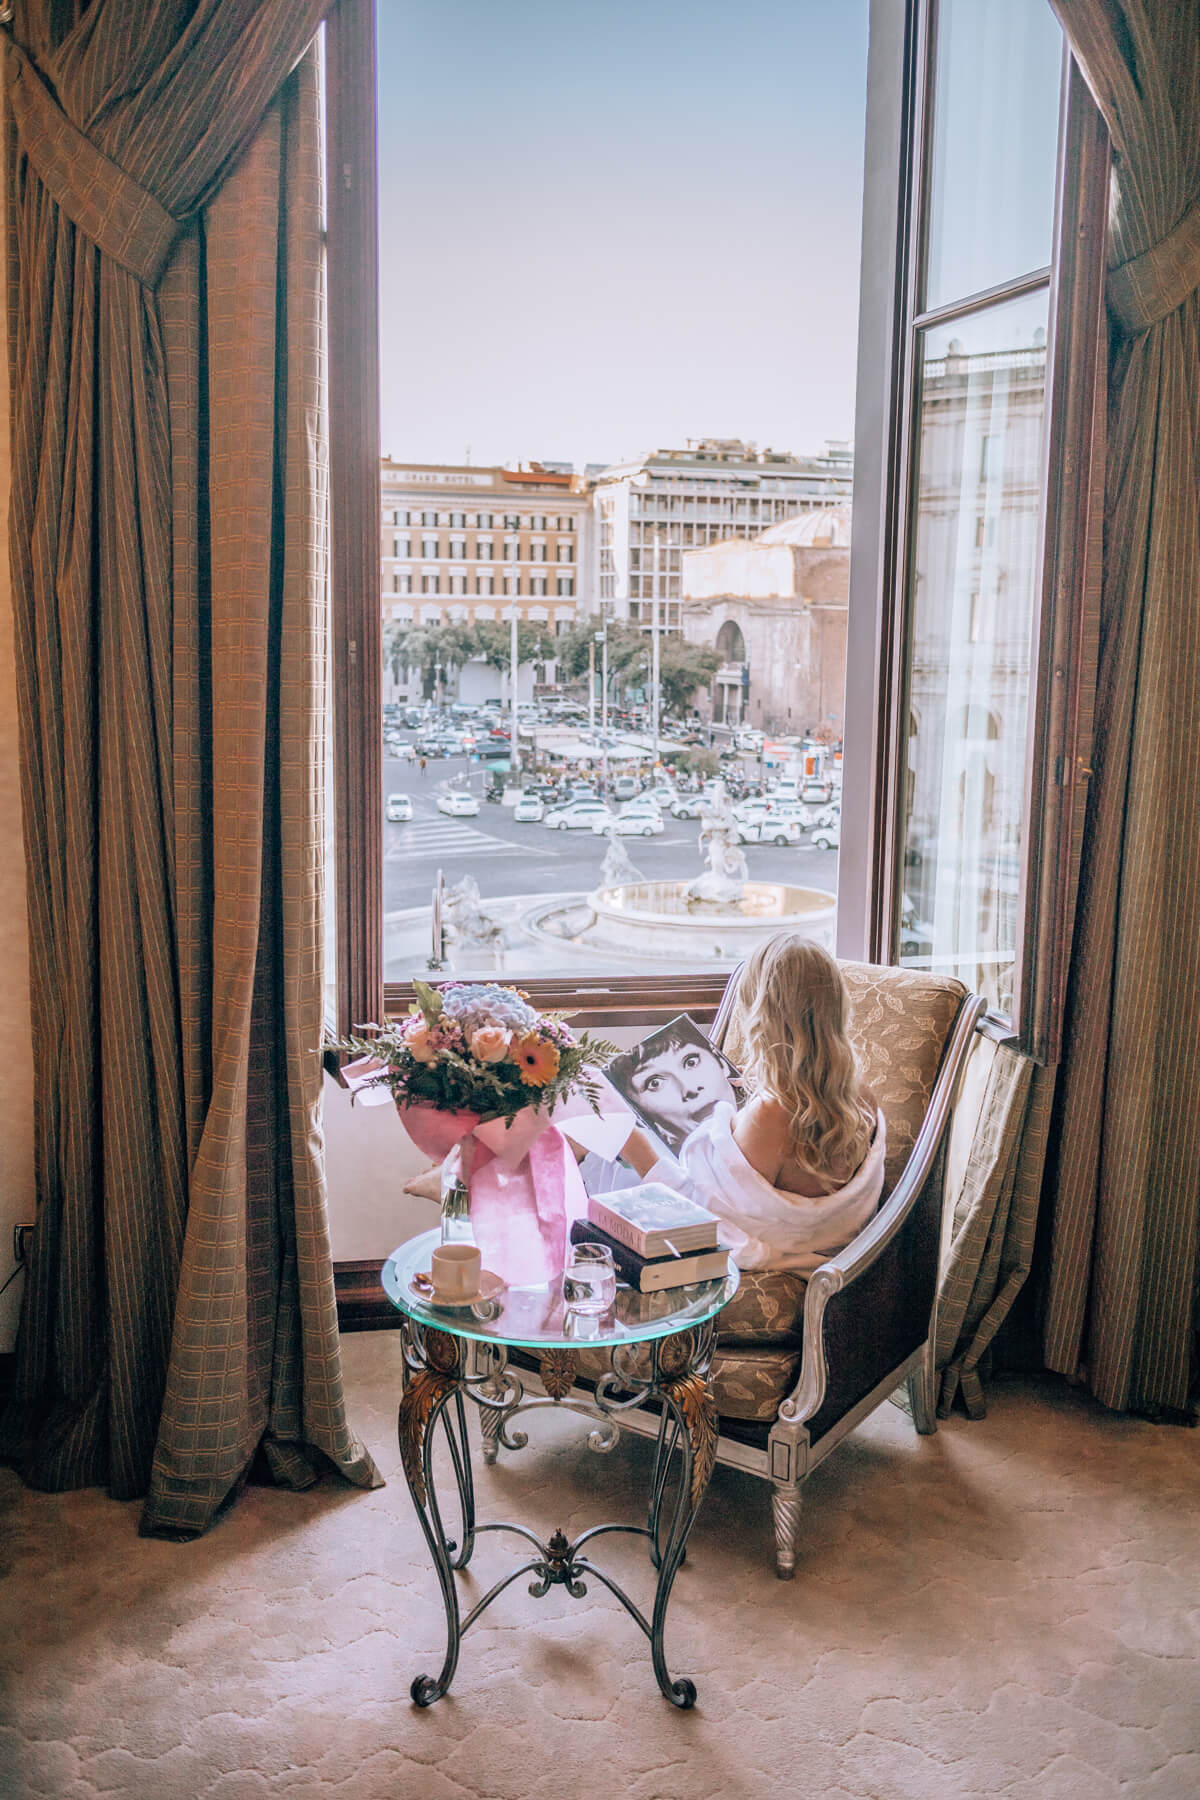 5 Star Hotel In Rome With Rooftop Pool Terrace Palazzo Naiadi